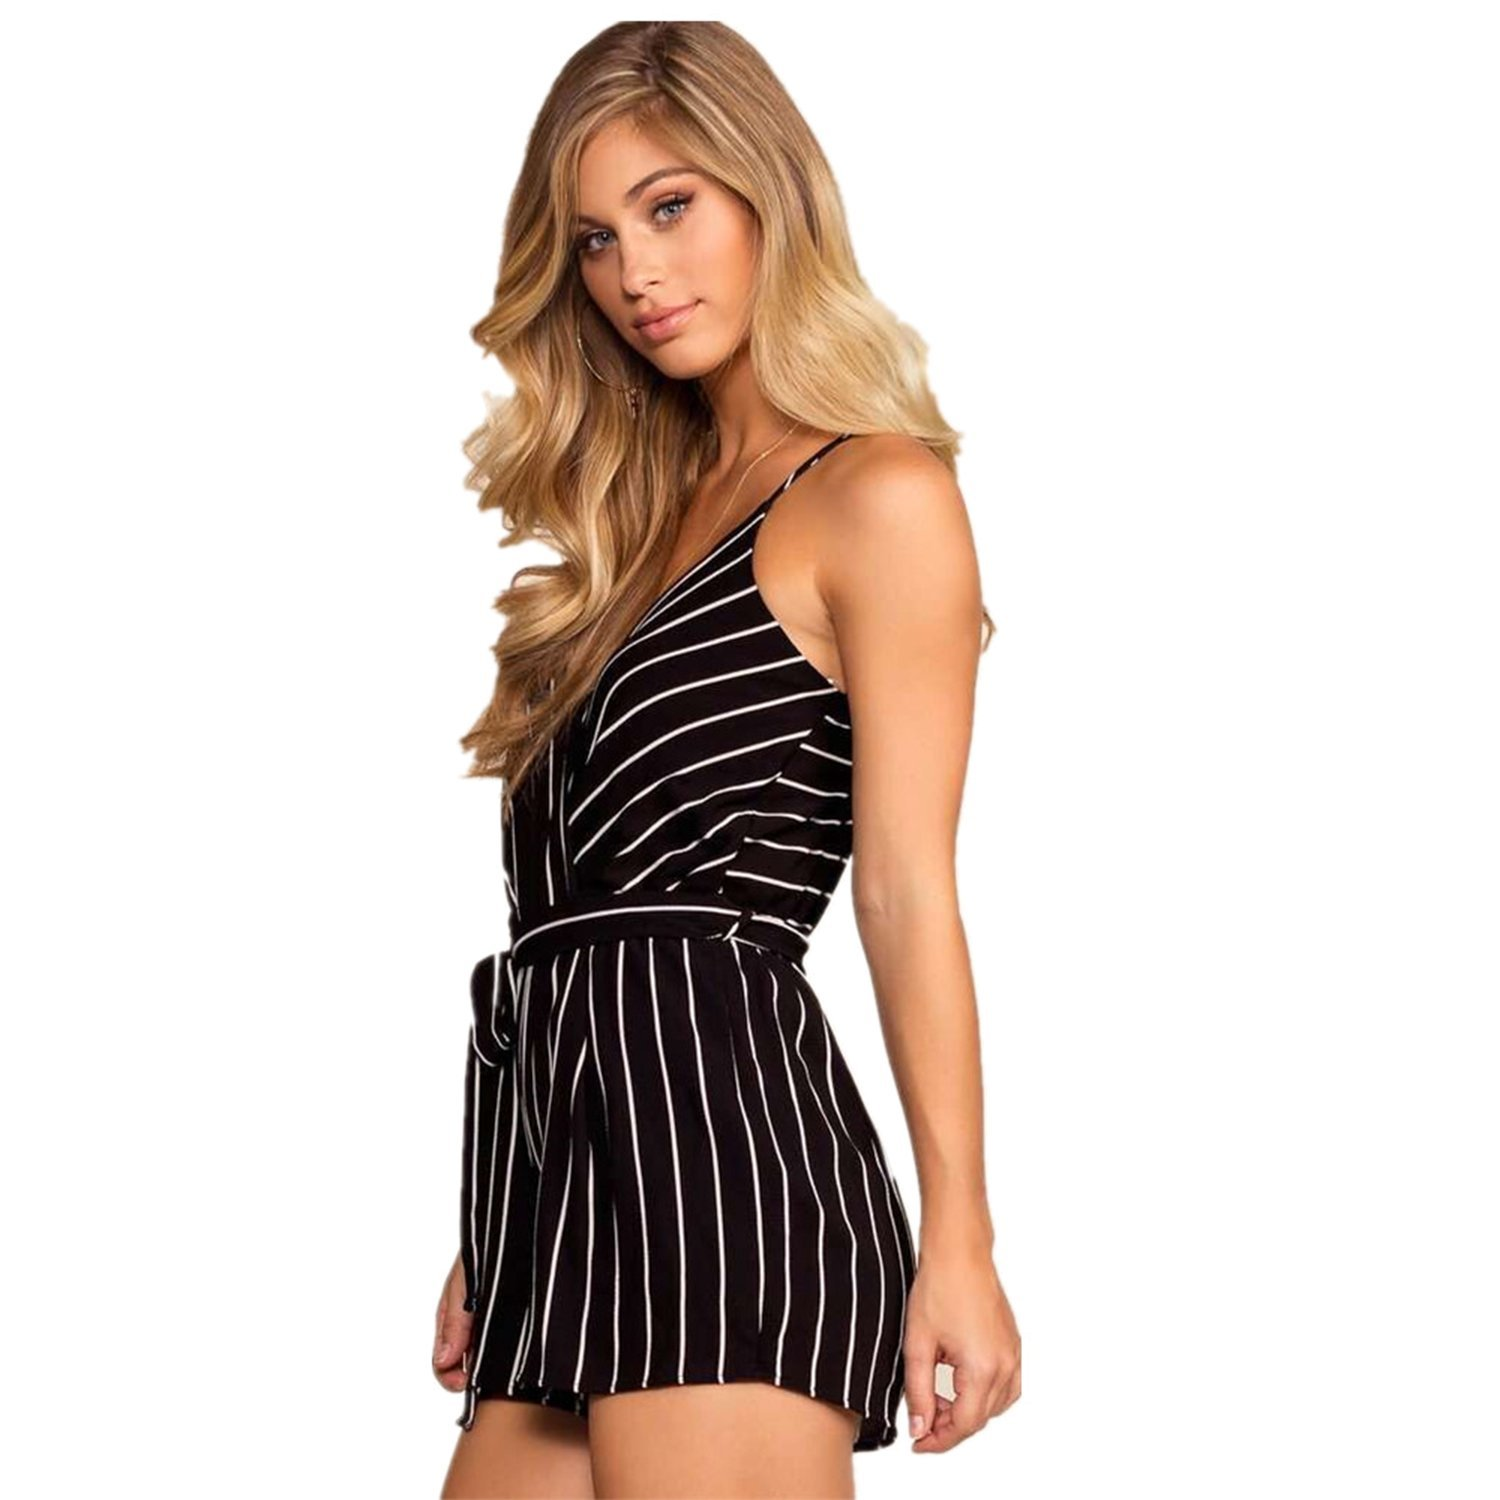 OUMAL Striped Rompers for Women Cute Summer Spaghetti Strap Dressy Short Rompers(Black,XL